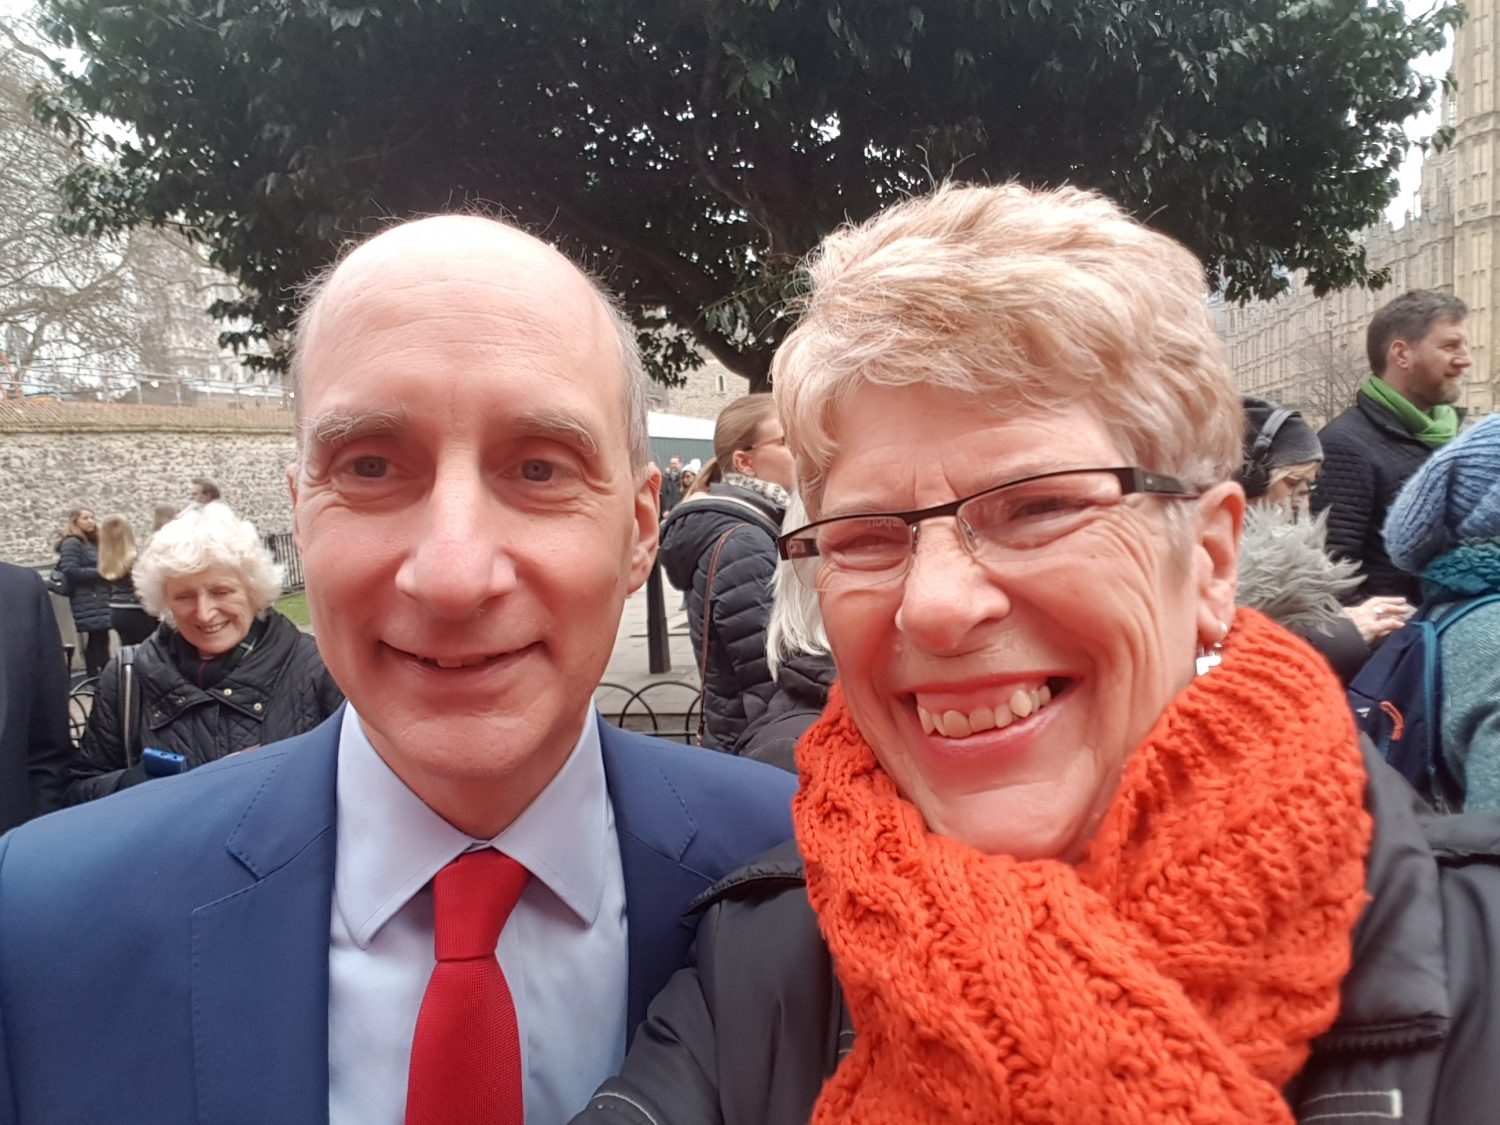 Sue and Lord Adonis